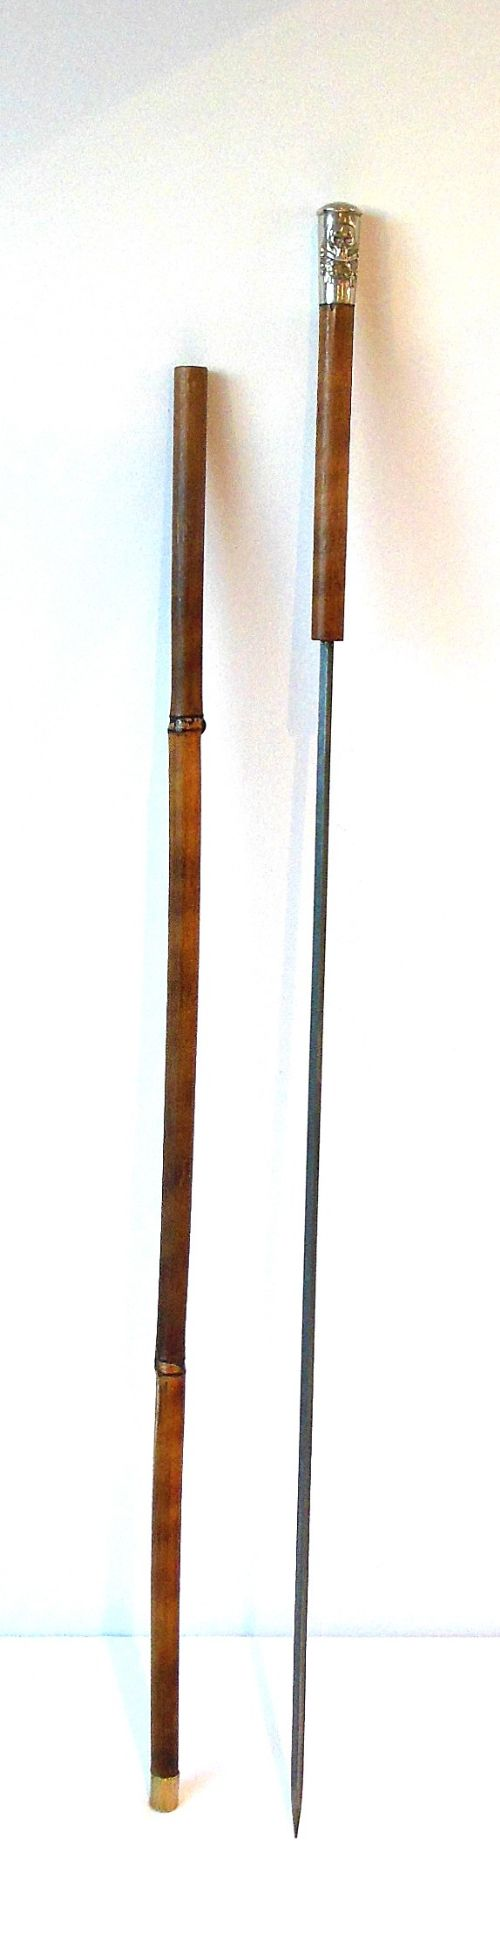 Bamboo sword stick or cane royal lancers